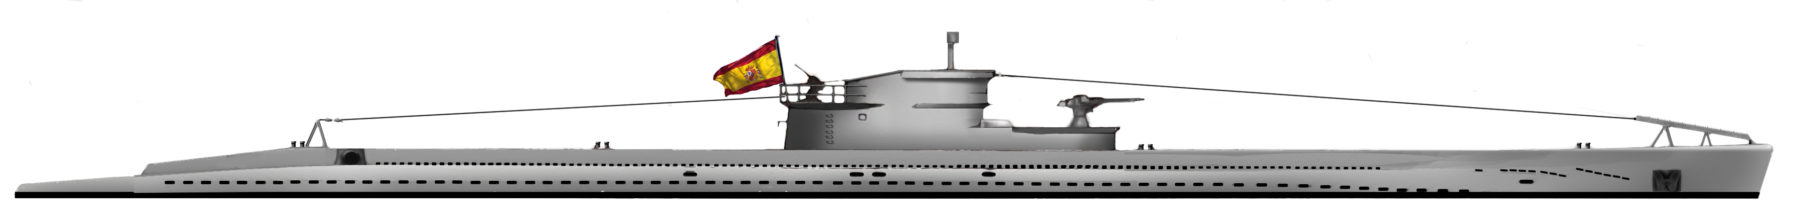 HD reconstruction D-type submarines